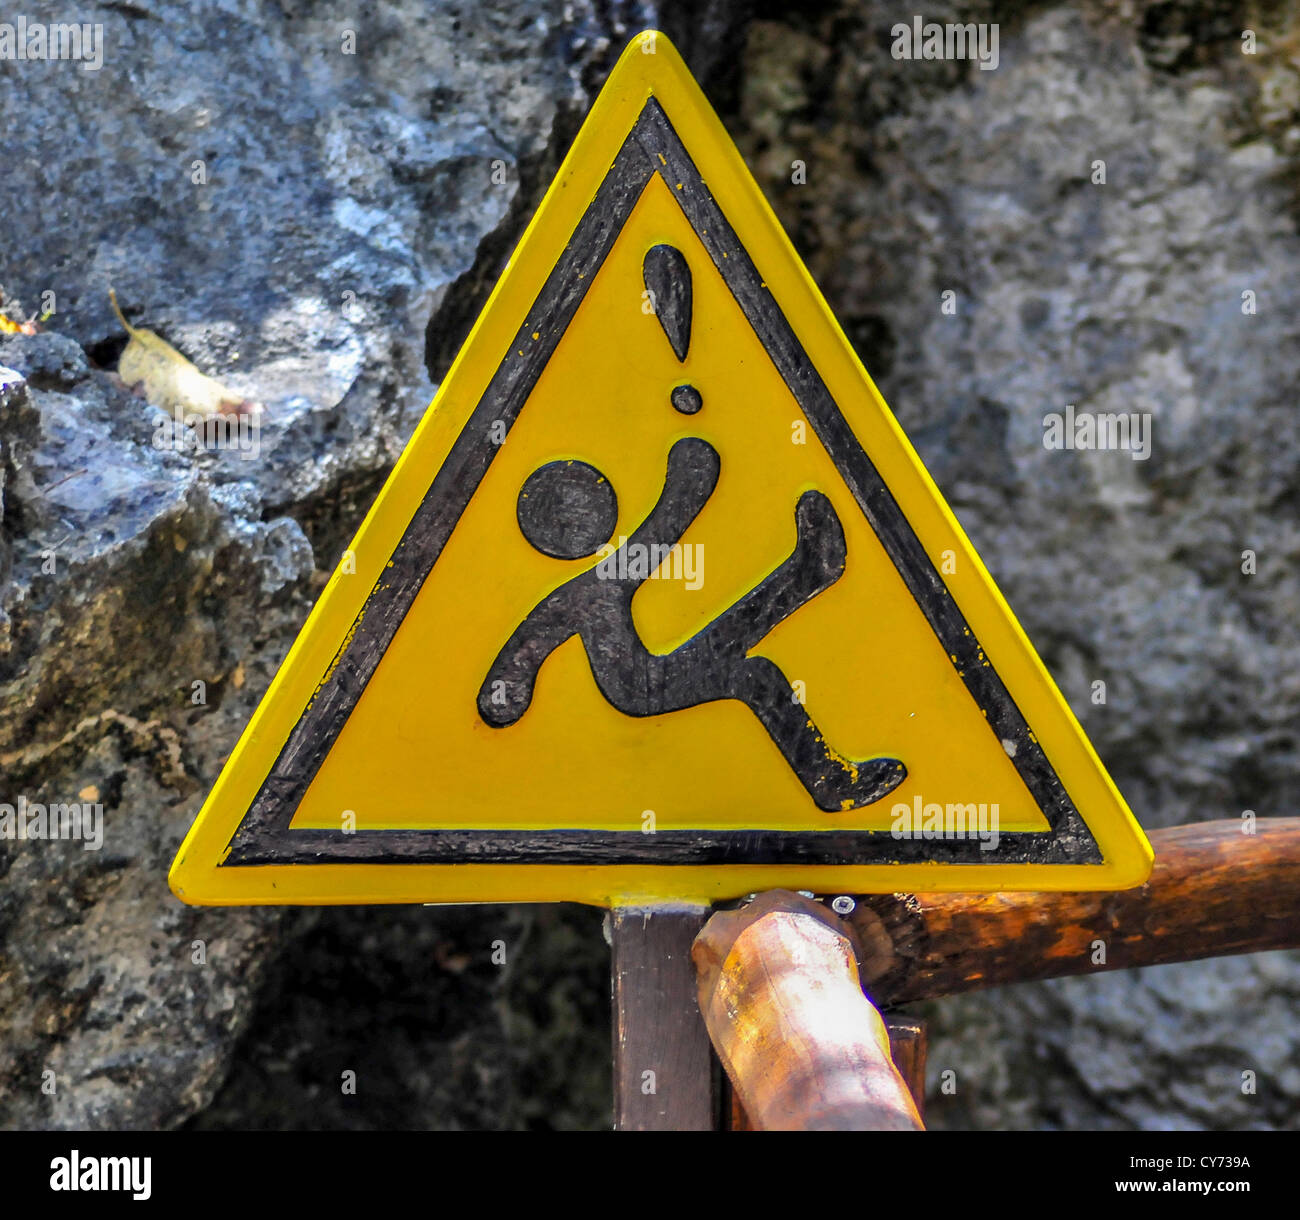 A yellow triangular slippery when wet warning sign in México Mexican with an ideogram of a falling figure triangle - Stock Image